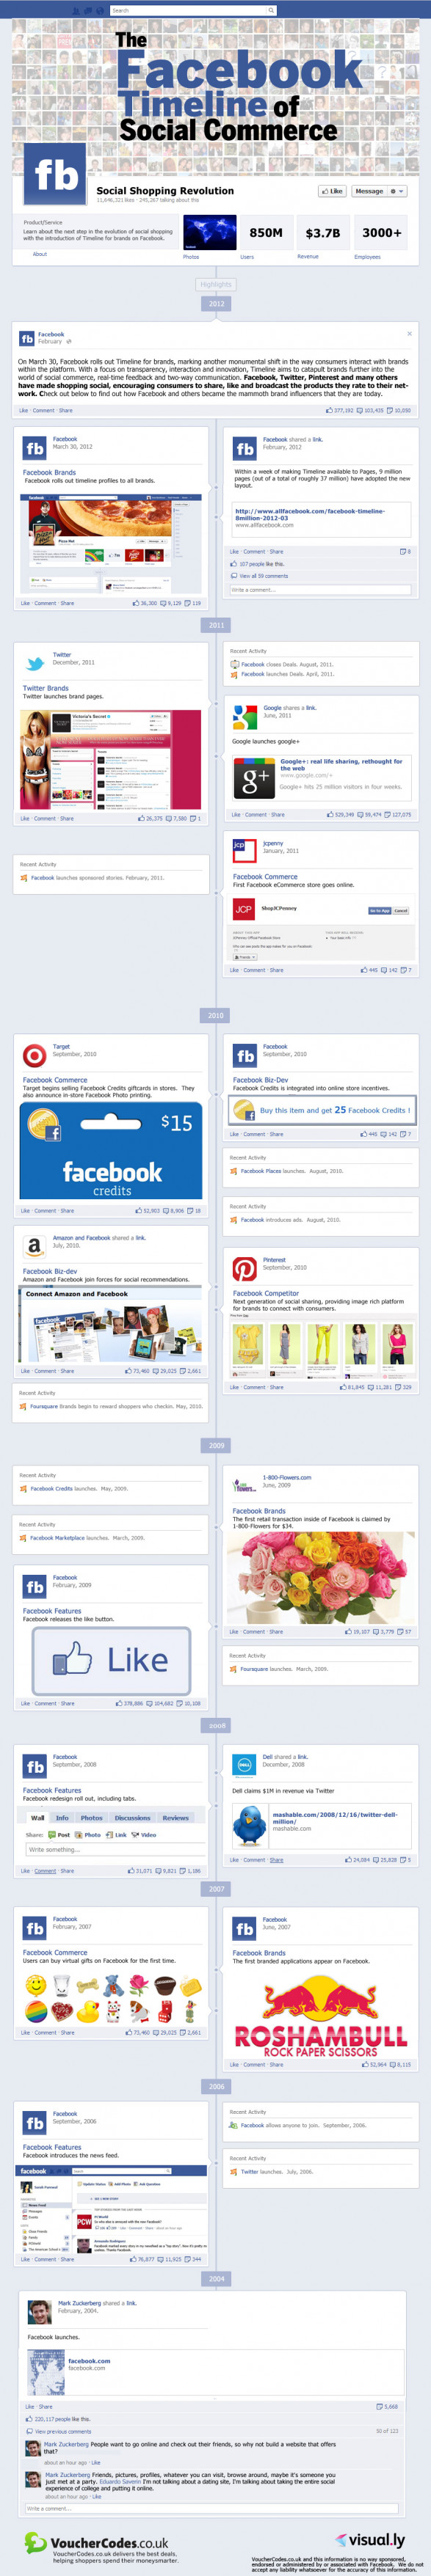 The Facebook Timeline of Social Commerce